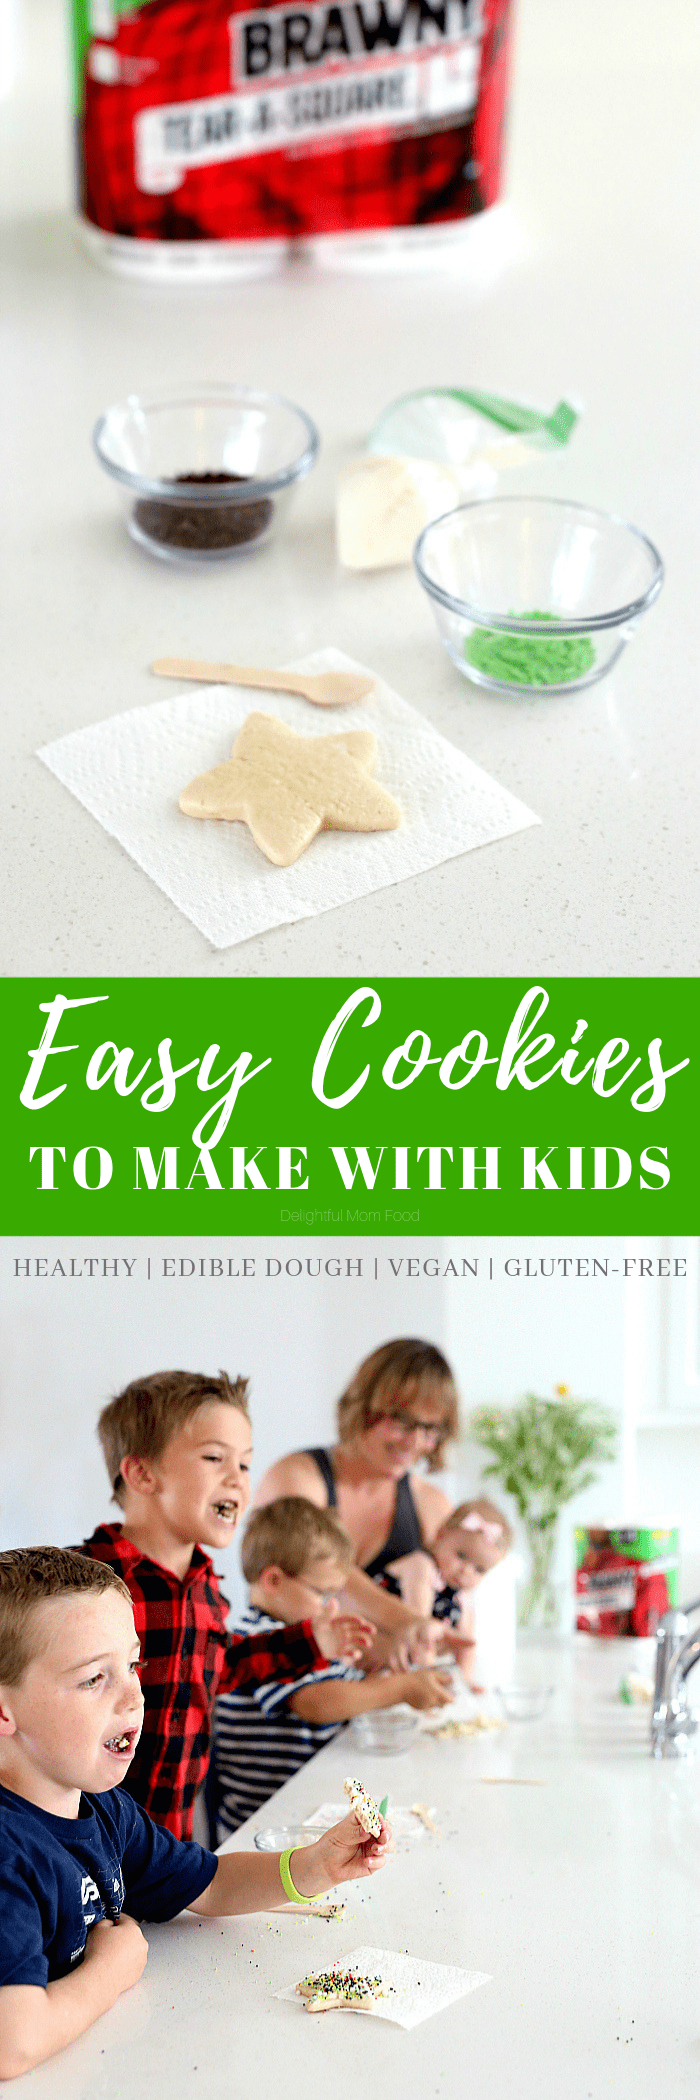 Gather the kids and their friends for an epic cookie party! These gluten-free cut out cookies are easy cookies for kids that they can make with their friends for a cookie exchange during the holidays! #cookies #cookie #vegan #glutenfree #cookiesforkids #easytomake #cookieparty #bakingparty #recipe #PutASquareThere #Brawny #TearASquare #Ad | Recipe at Delightful Mom Food